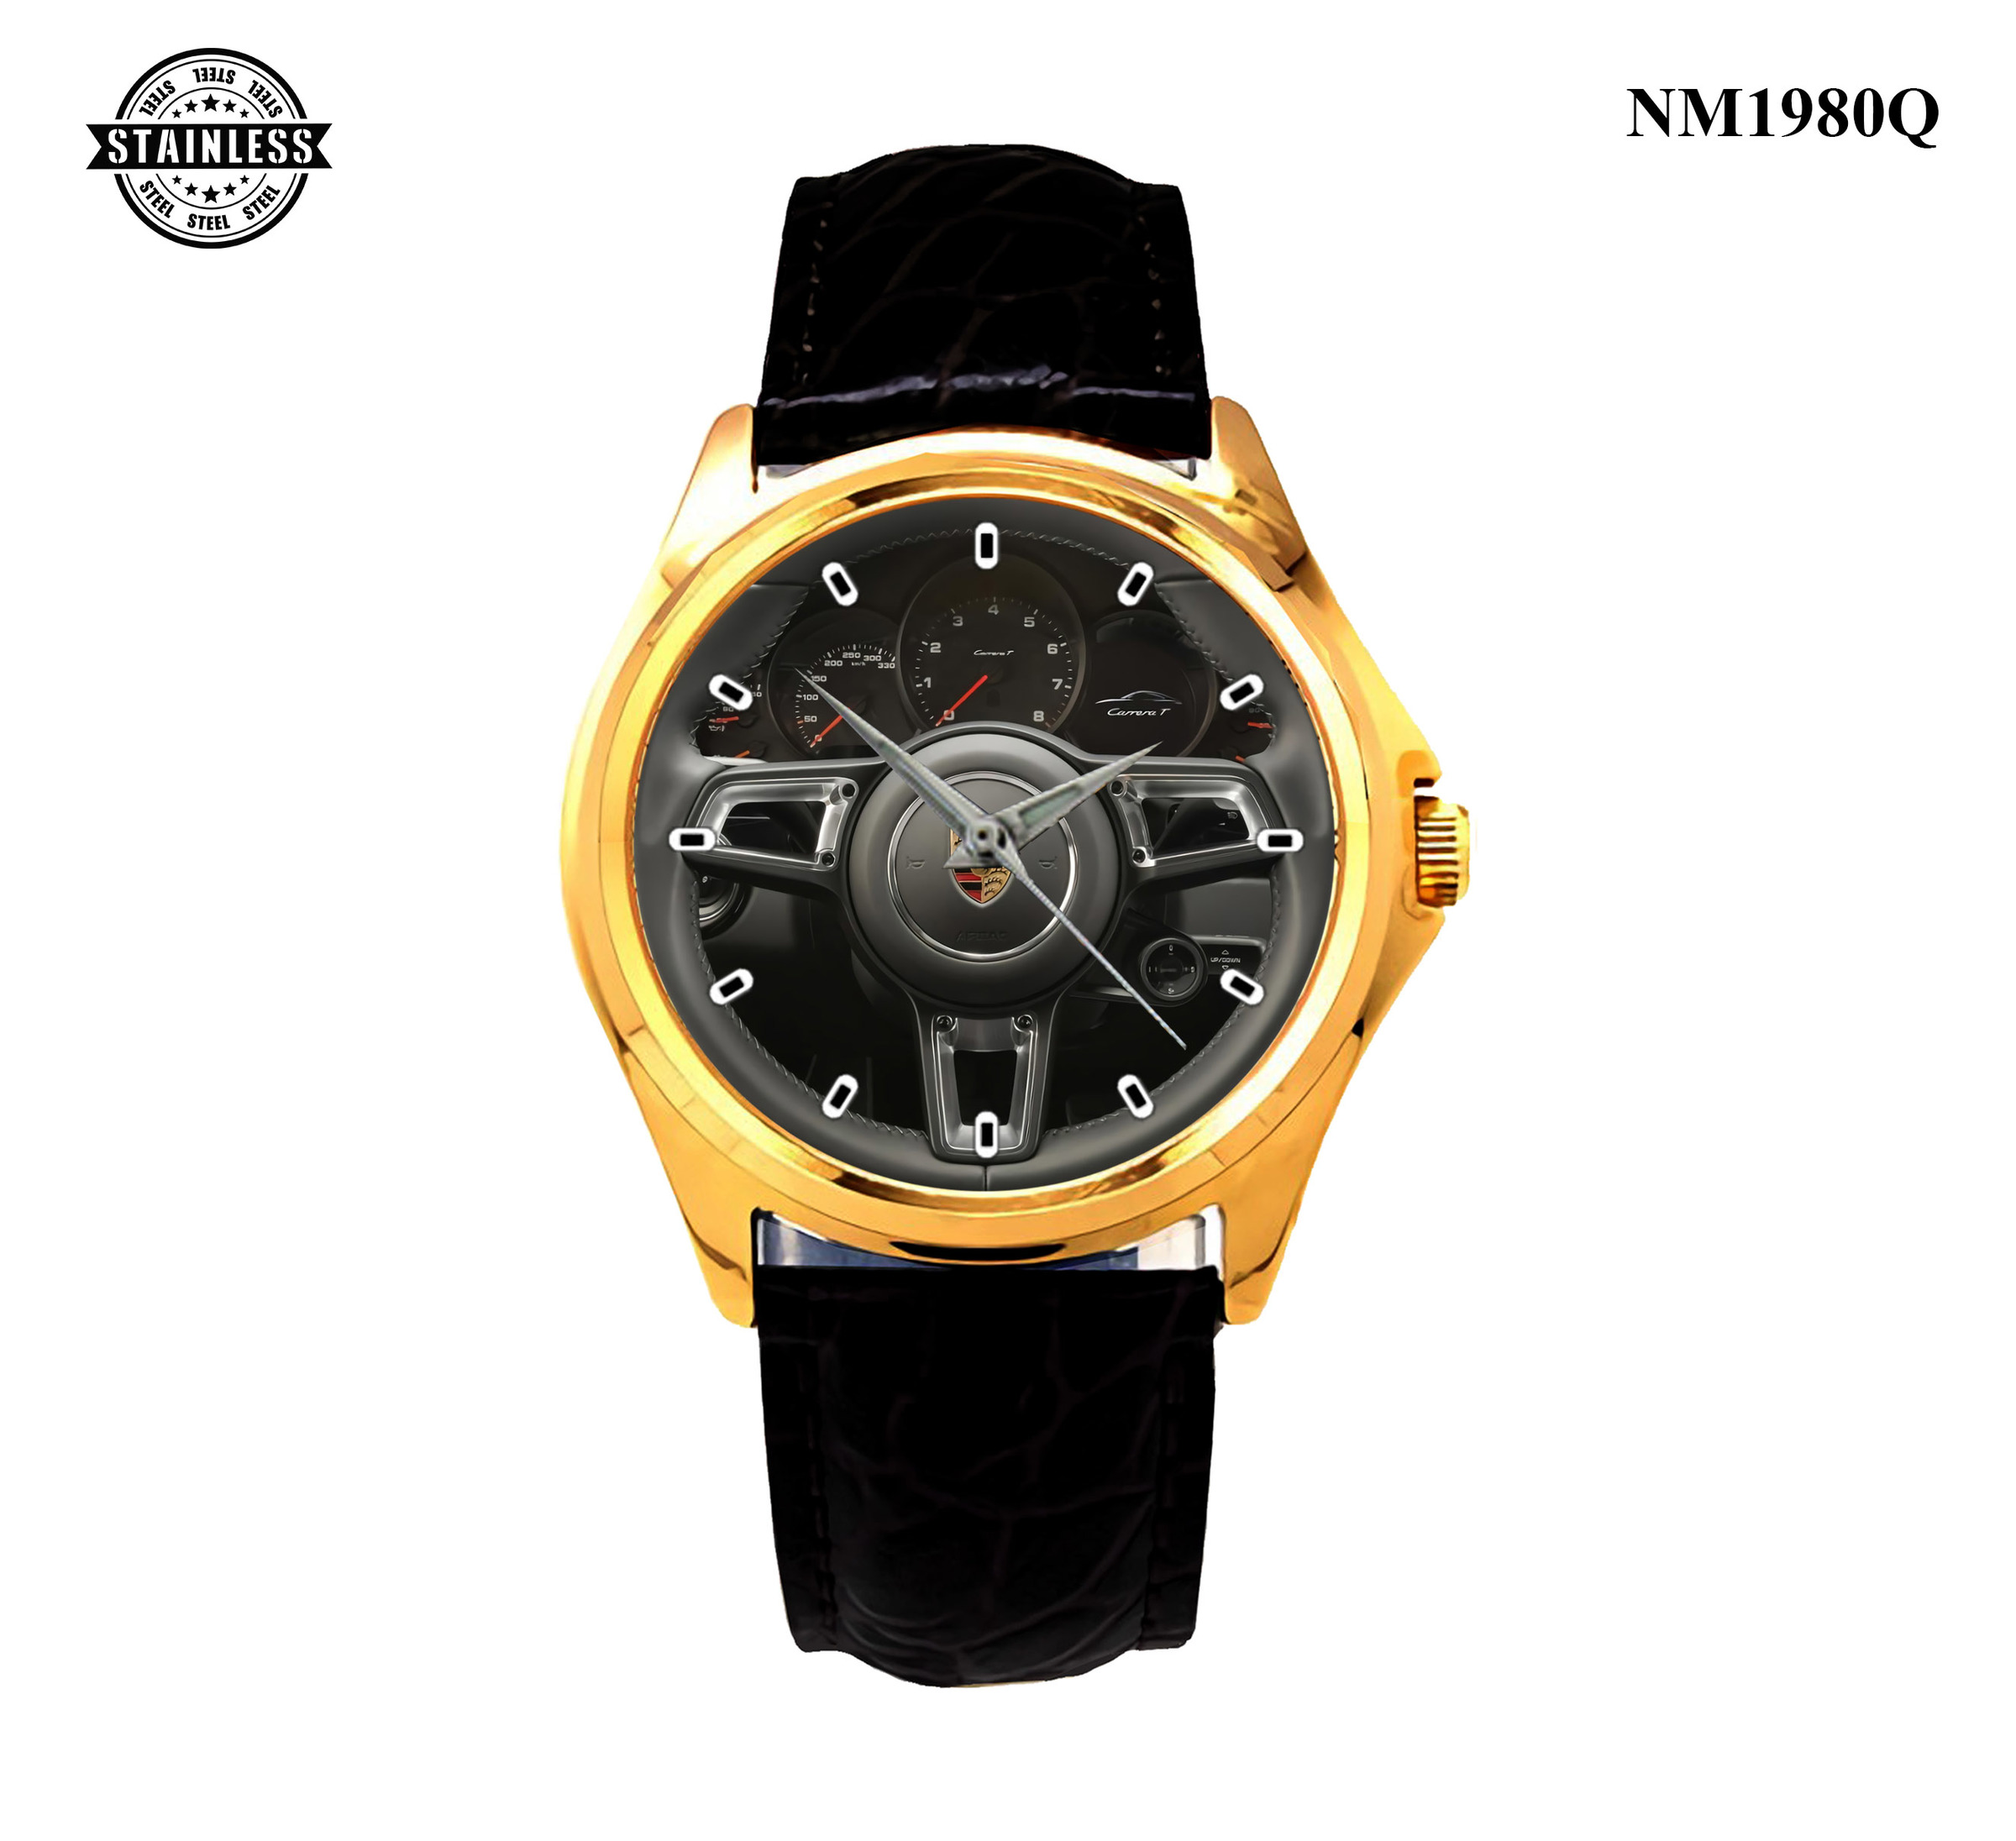 1.22 New Design Mens Jewelery 2018 Porsche 911 Carrera Steering Wheels Sport Leather watch Gold.jpg